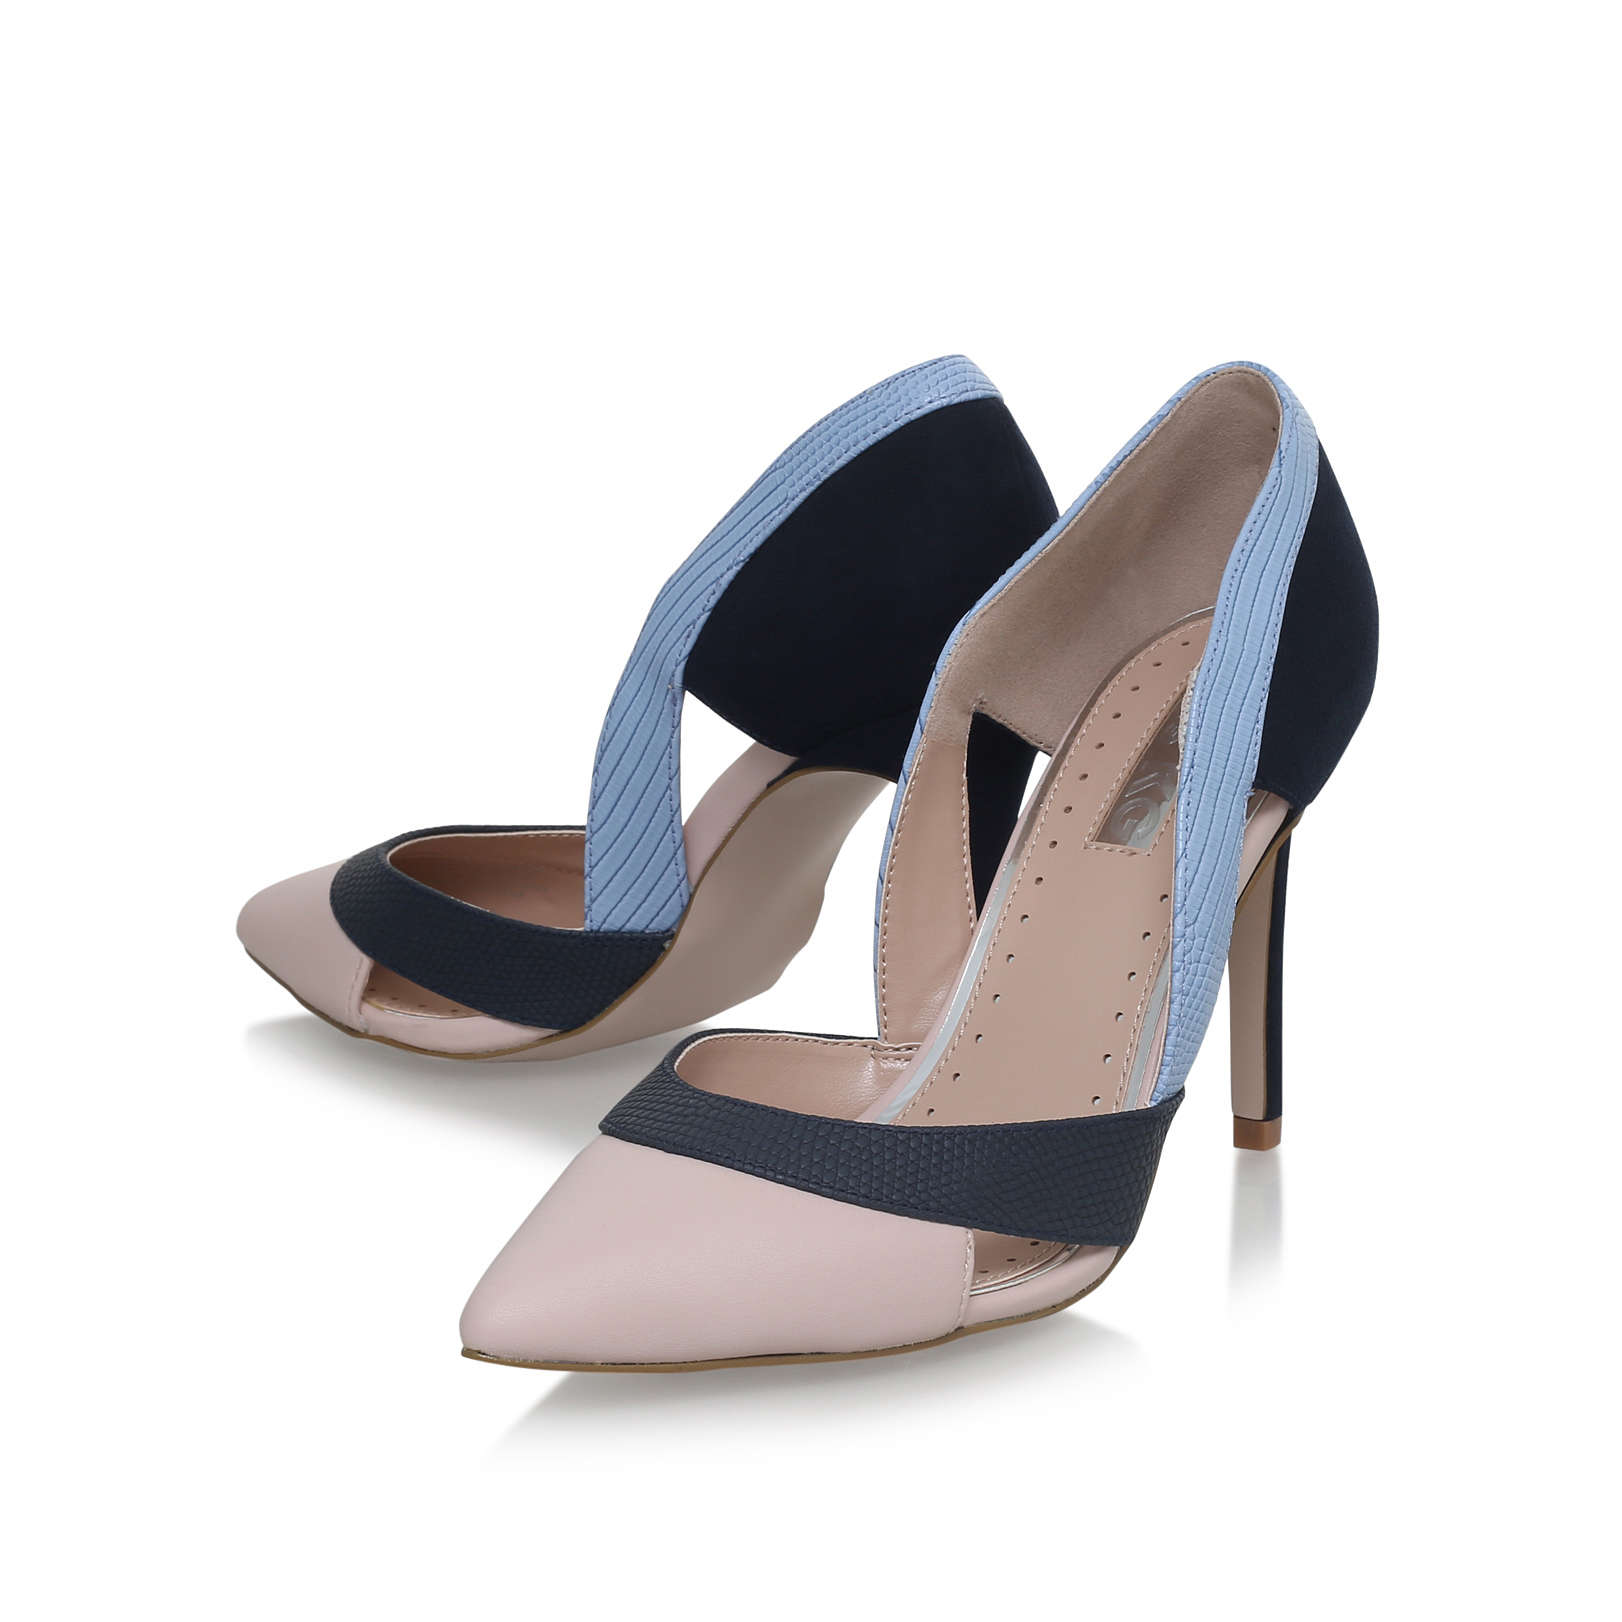 CEILE Miss KG Ceile Nude High Heel Court Shoes by MISS KG